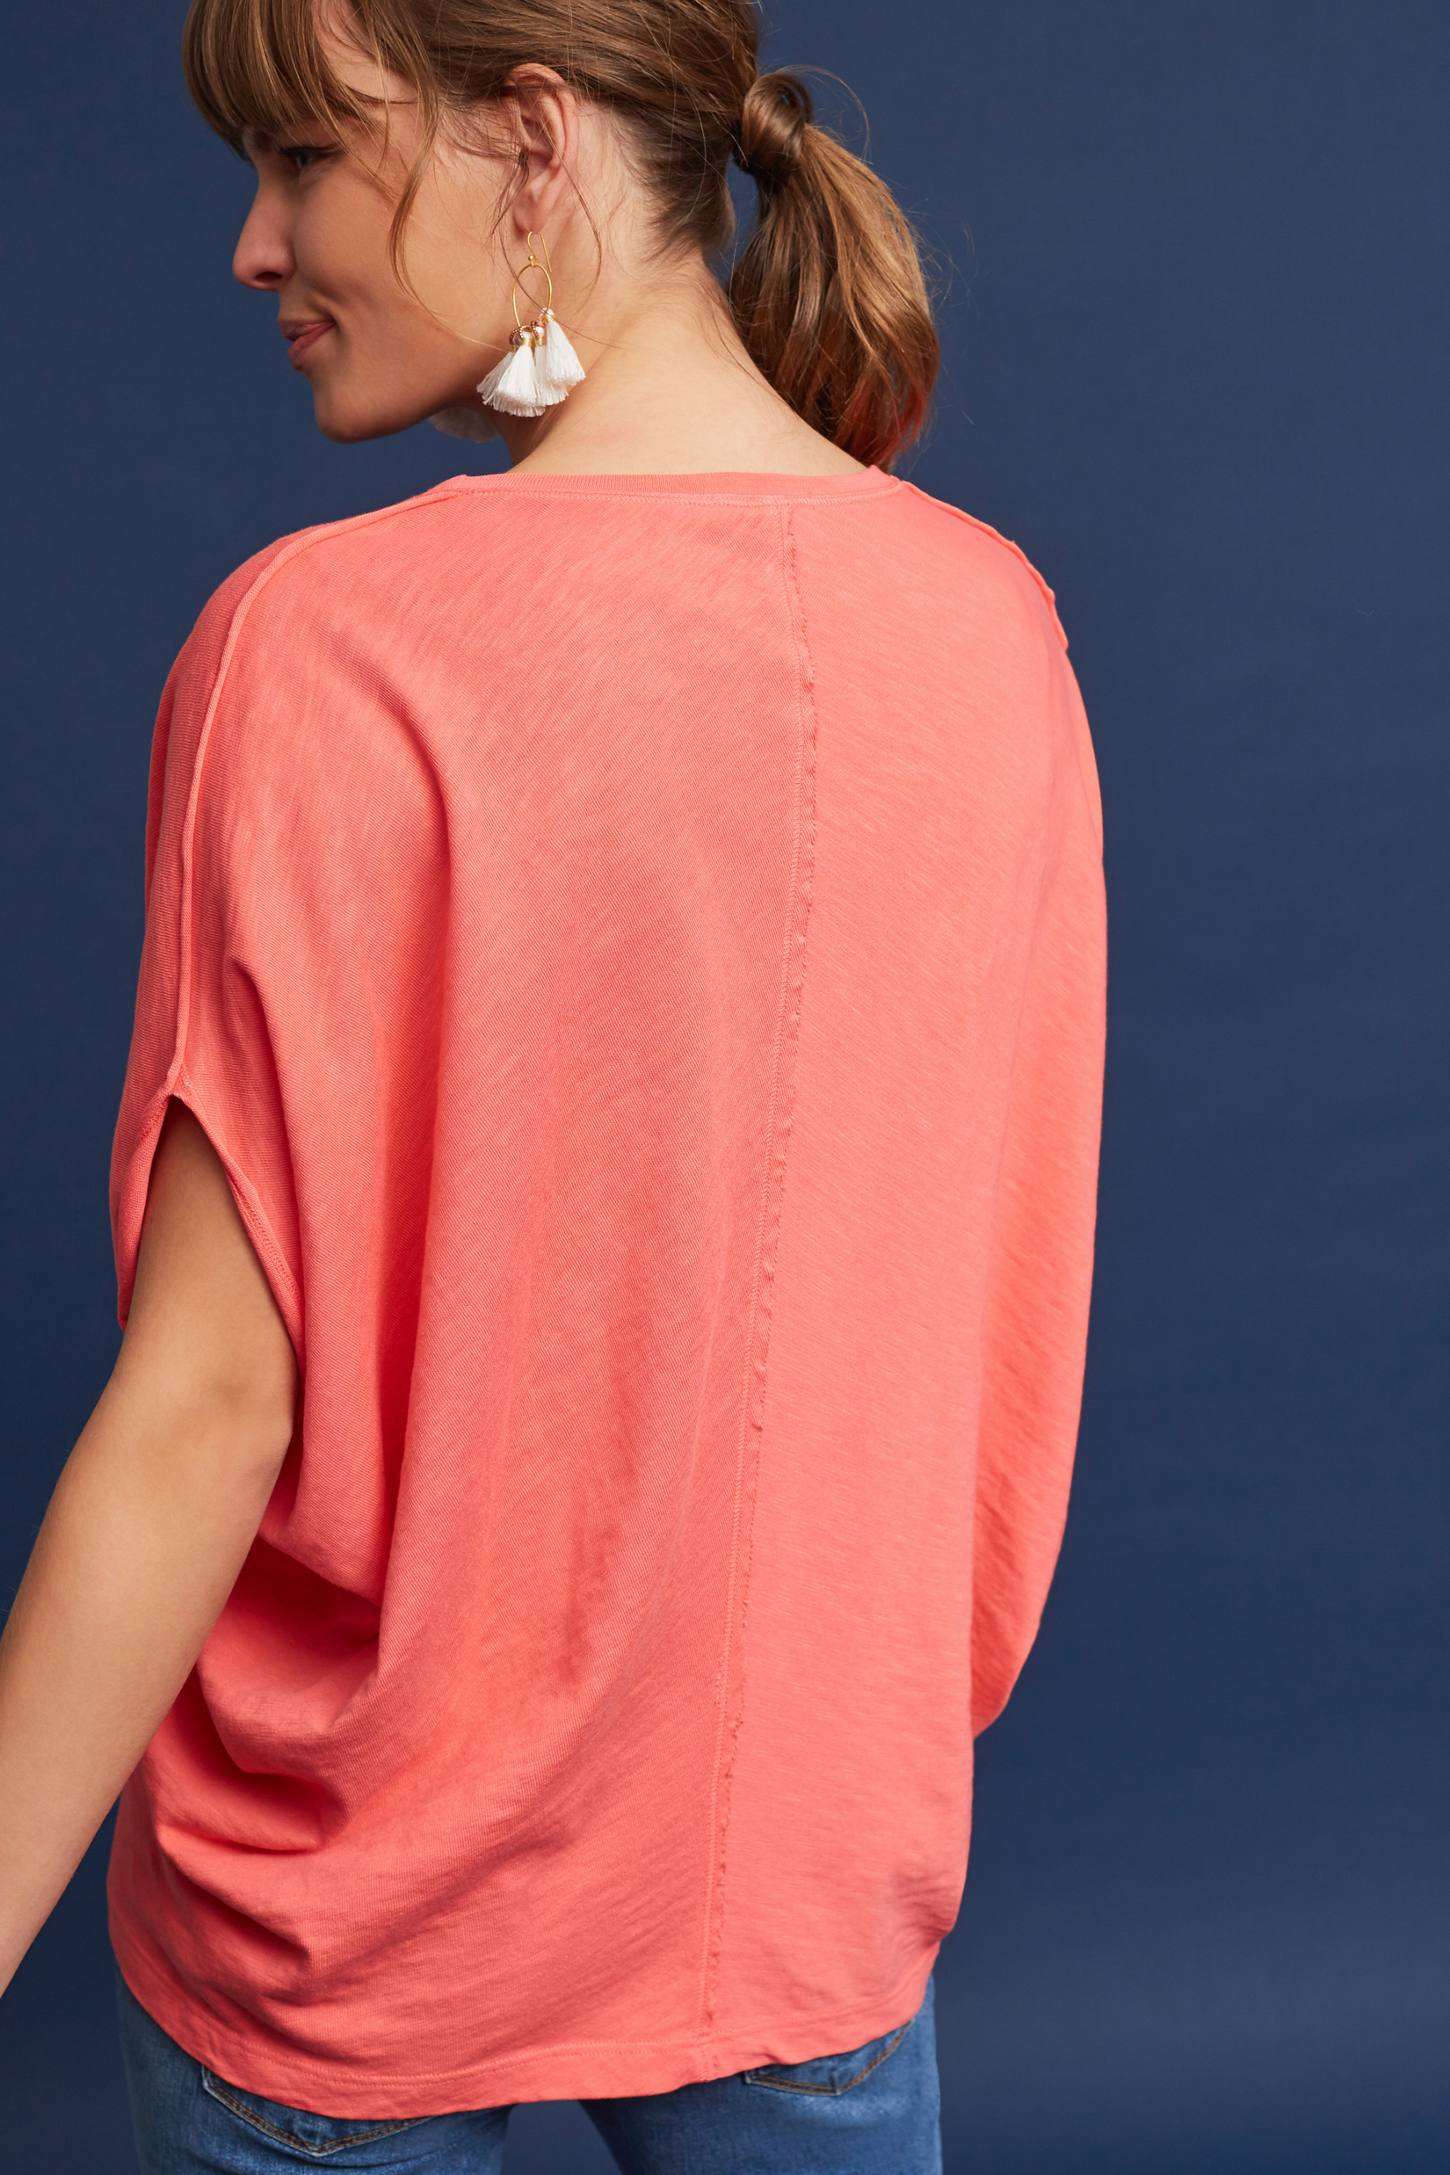 Slide View: 2: Noelie V-Neck Dolman Top